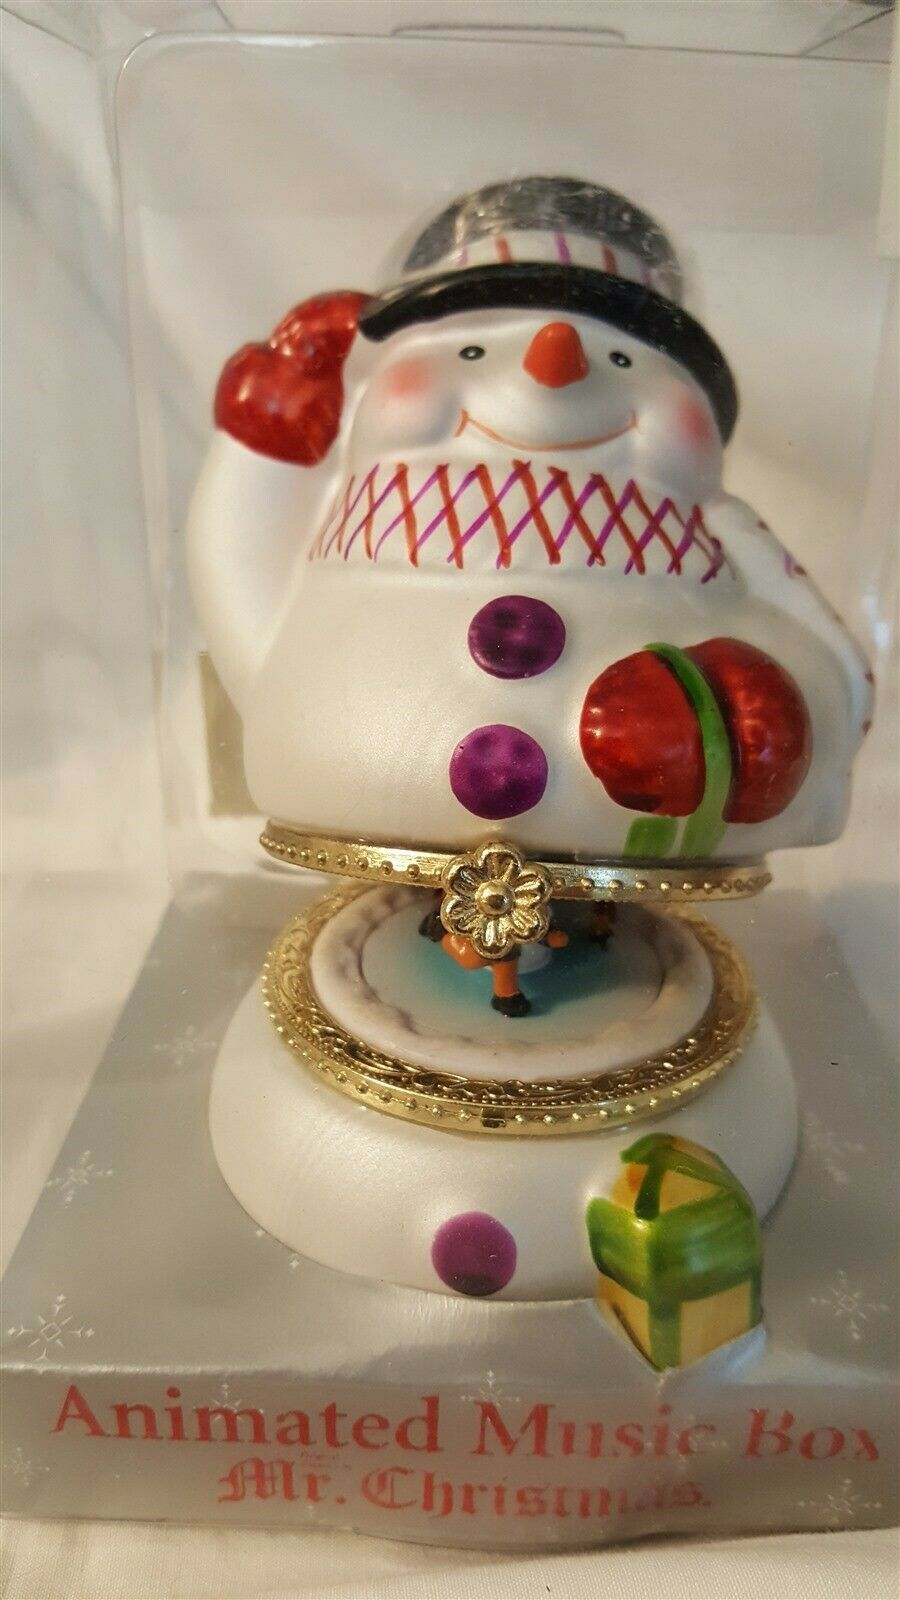 Mr Christmas 2006 Animated Snowman Music Box Deck The Halls NIB - $15.00